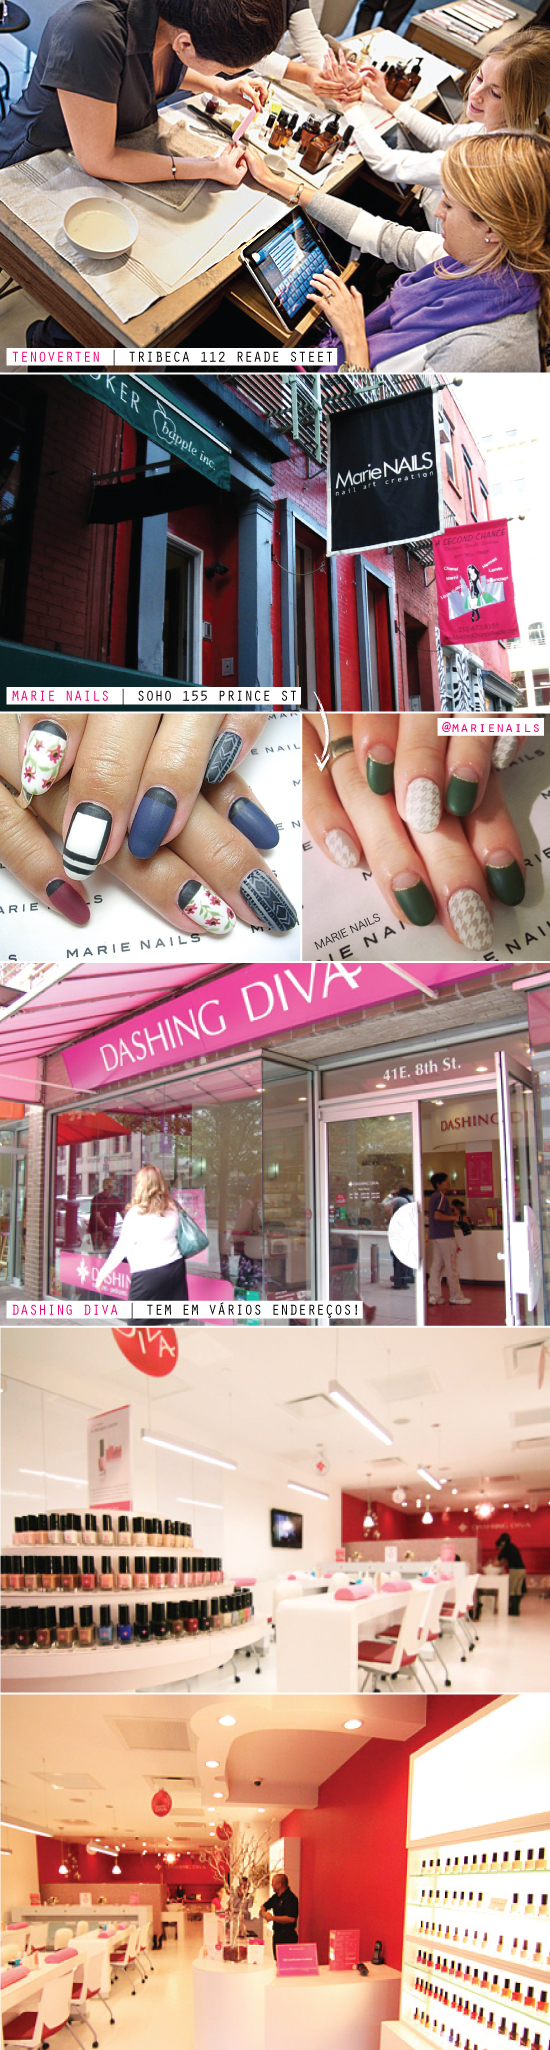 NY-UNHAS-manicure-salao-onde-fazer-indicacao-nail-art-decoradas-dica-viagem-beleza-esmalte-salon-dica-tips-travel-blog-studio-l-midtown-marie-dashing-diva-tenoverten-beauty